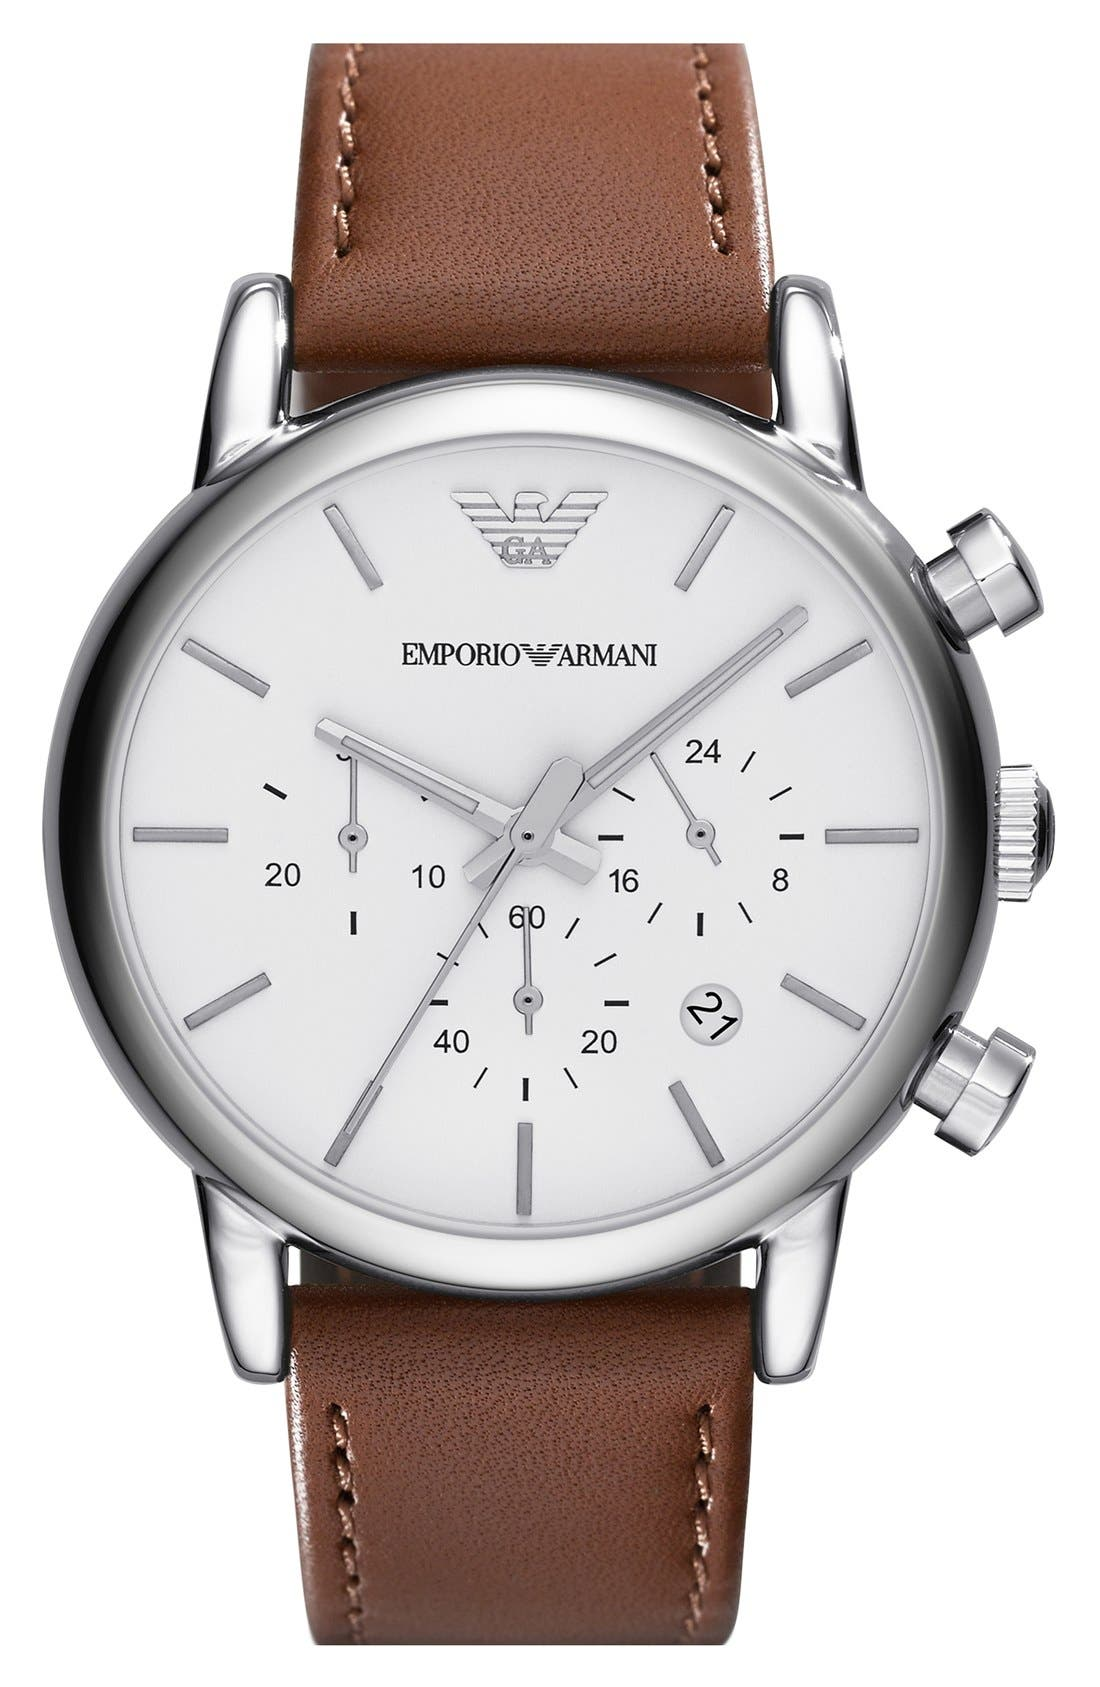 Main Image - Emporio Armani Chronograph Leather Strap Watch, 41mm